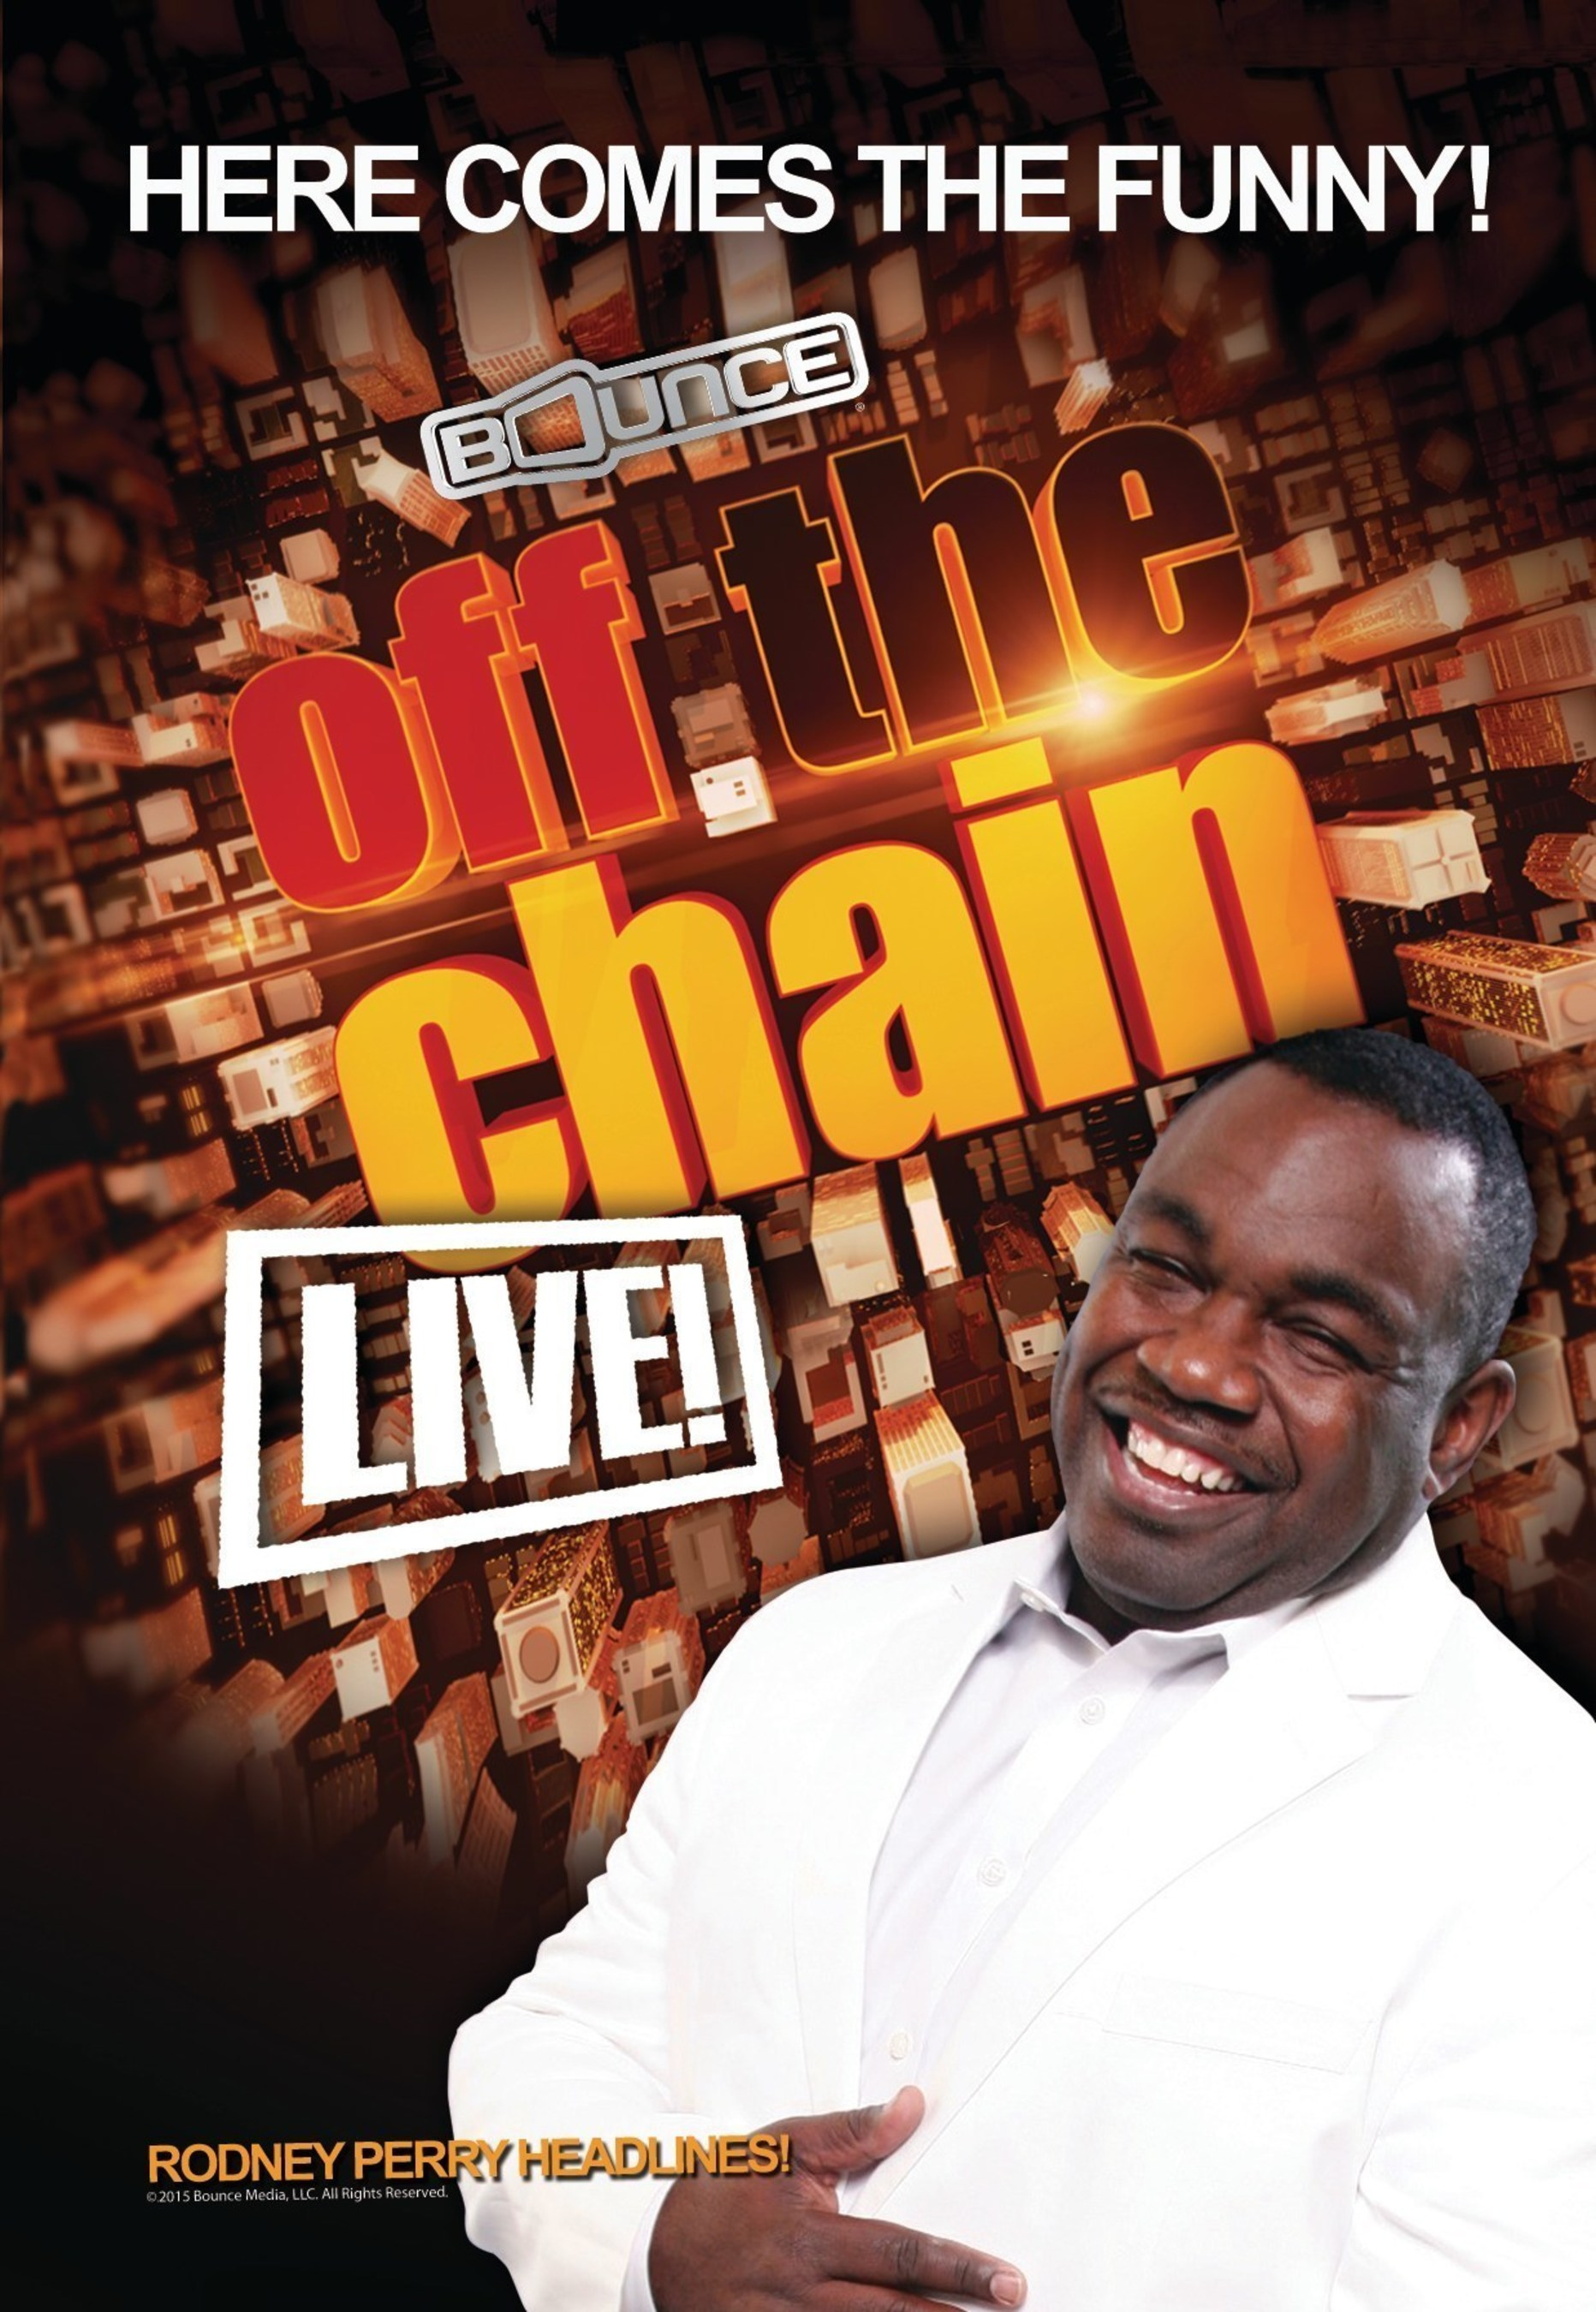 """Rodney Perry headlines Bounce TV's """"Off The Chain Live!"""" Comedy Tour 2015. """"Off The Chain"""" is Bounce TV's family-friendly comedy show featuring some of the most hilarious African-American comedians on the stand-up scene. Bounce TV airs on the digital signals of local television stations with corresponding cable carriage. Visit BounceTV.com for more information."""